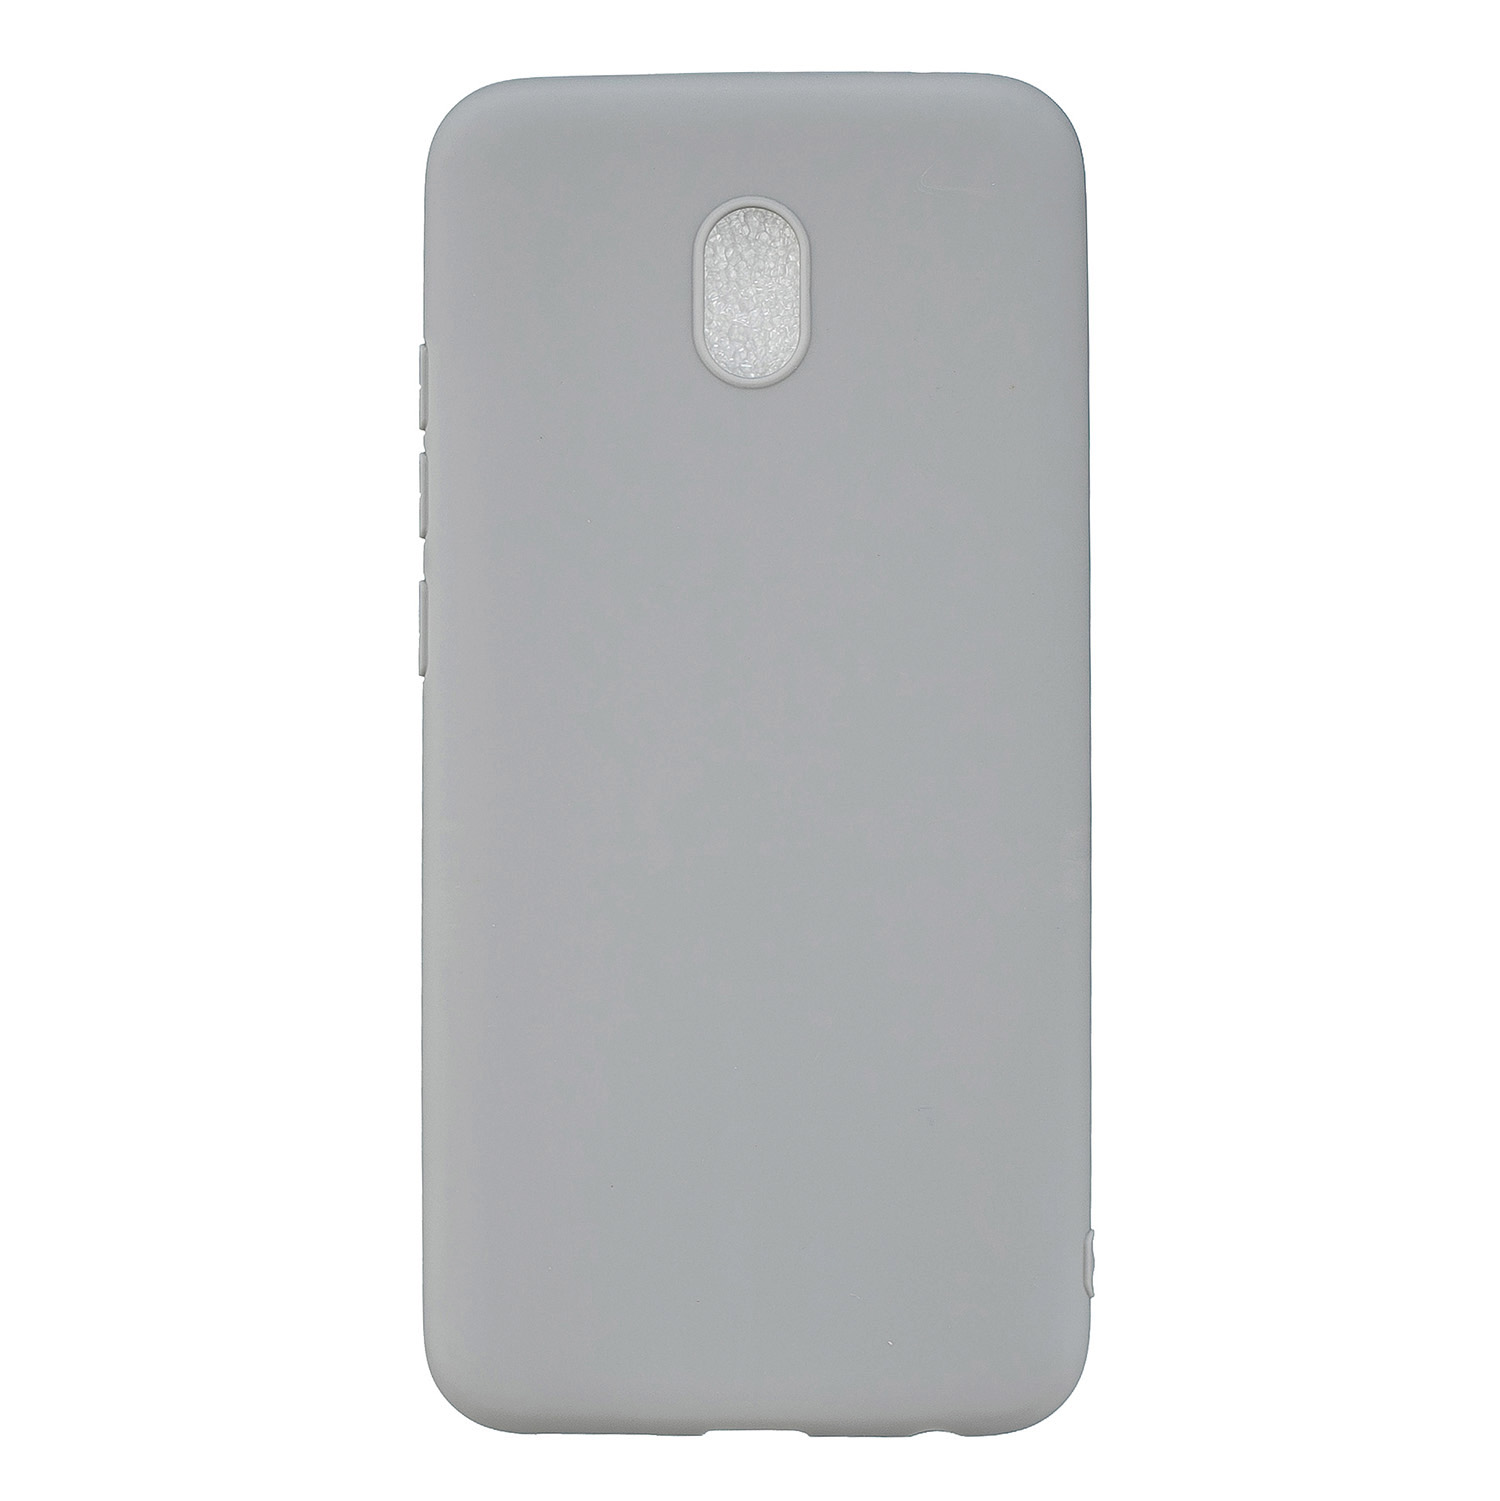 For Redmi 8 8A note 8T TPU Back Cover Soft Candy Color Frosted Surface Shockproof TPU Mobile Phone Protective Case 12